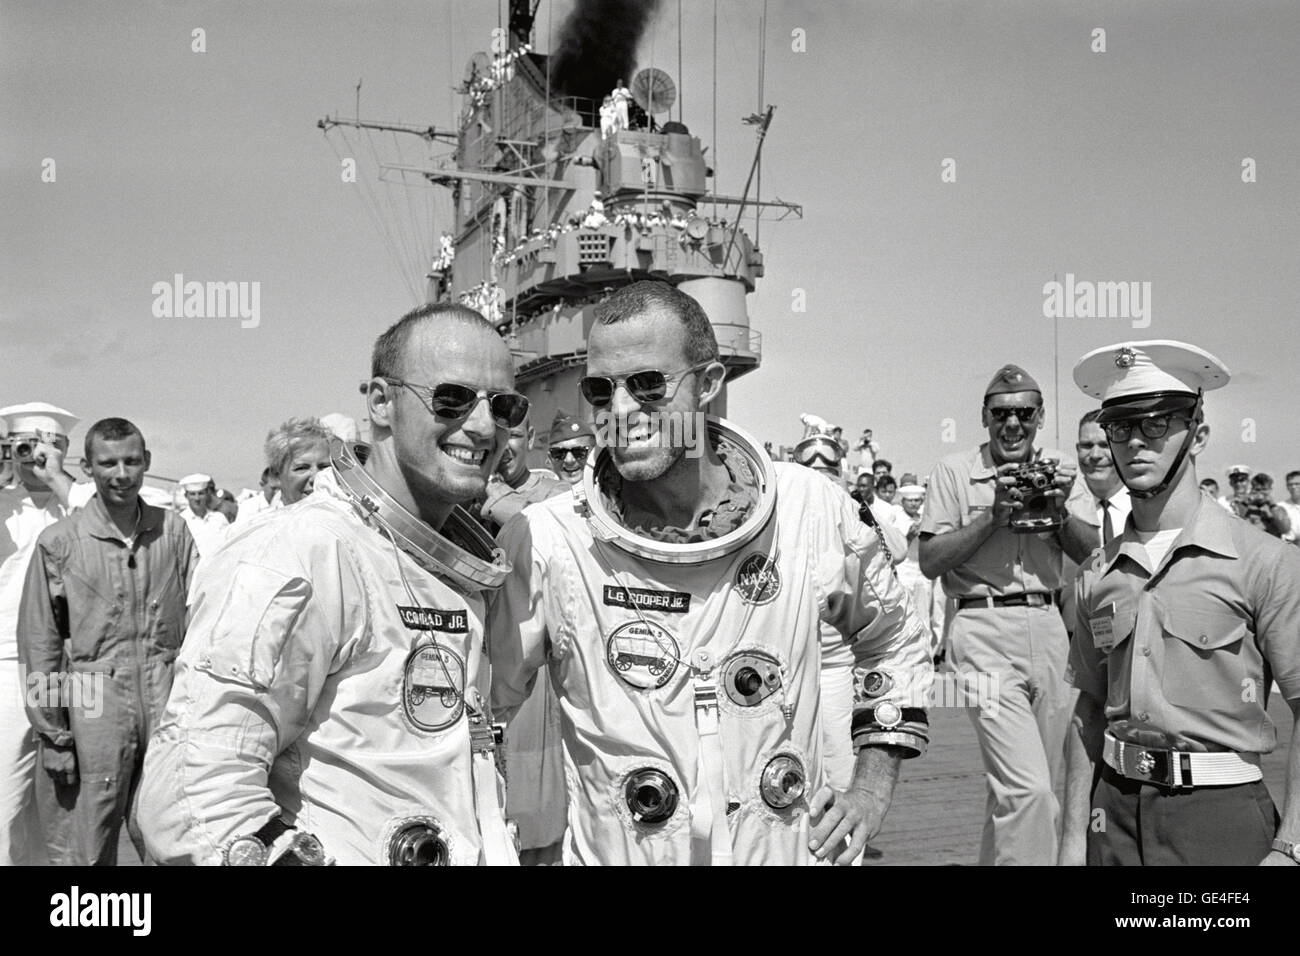 (August 29, 1965) Astronauts L. Gordon Cooper Jr. (right) and Charles Conrad Jr. walk across the deck of the recovery Stock Photo